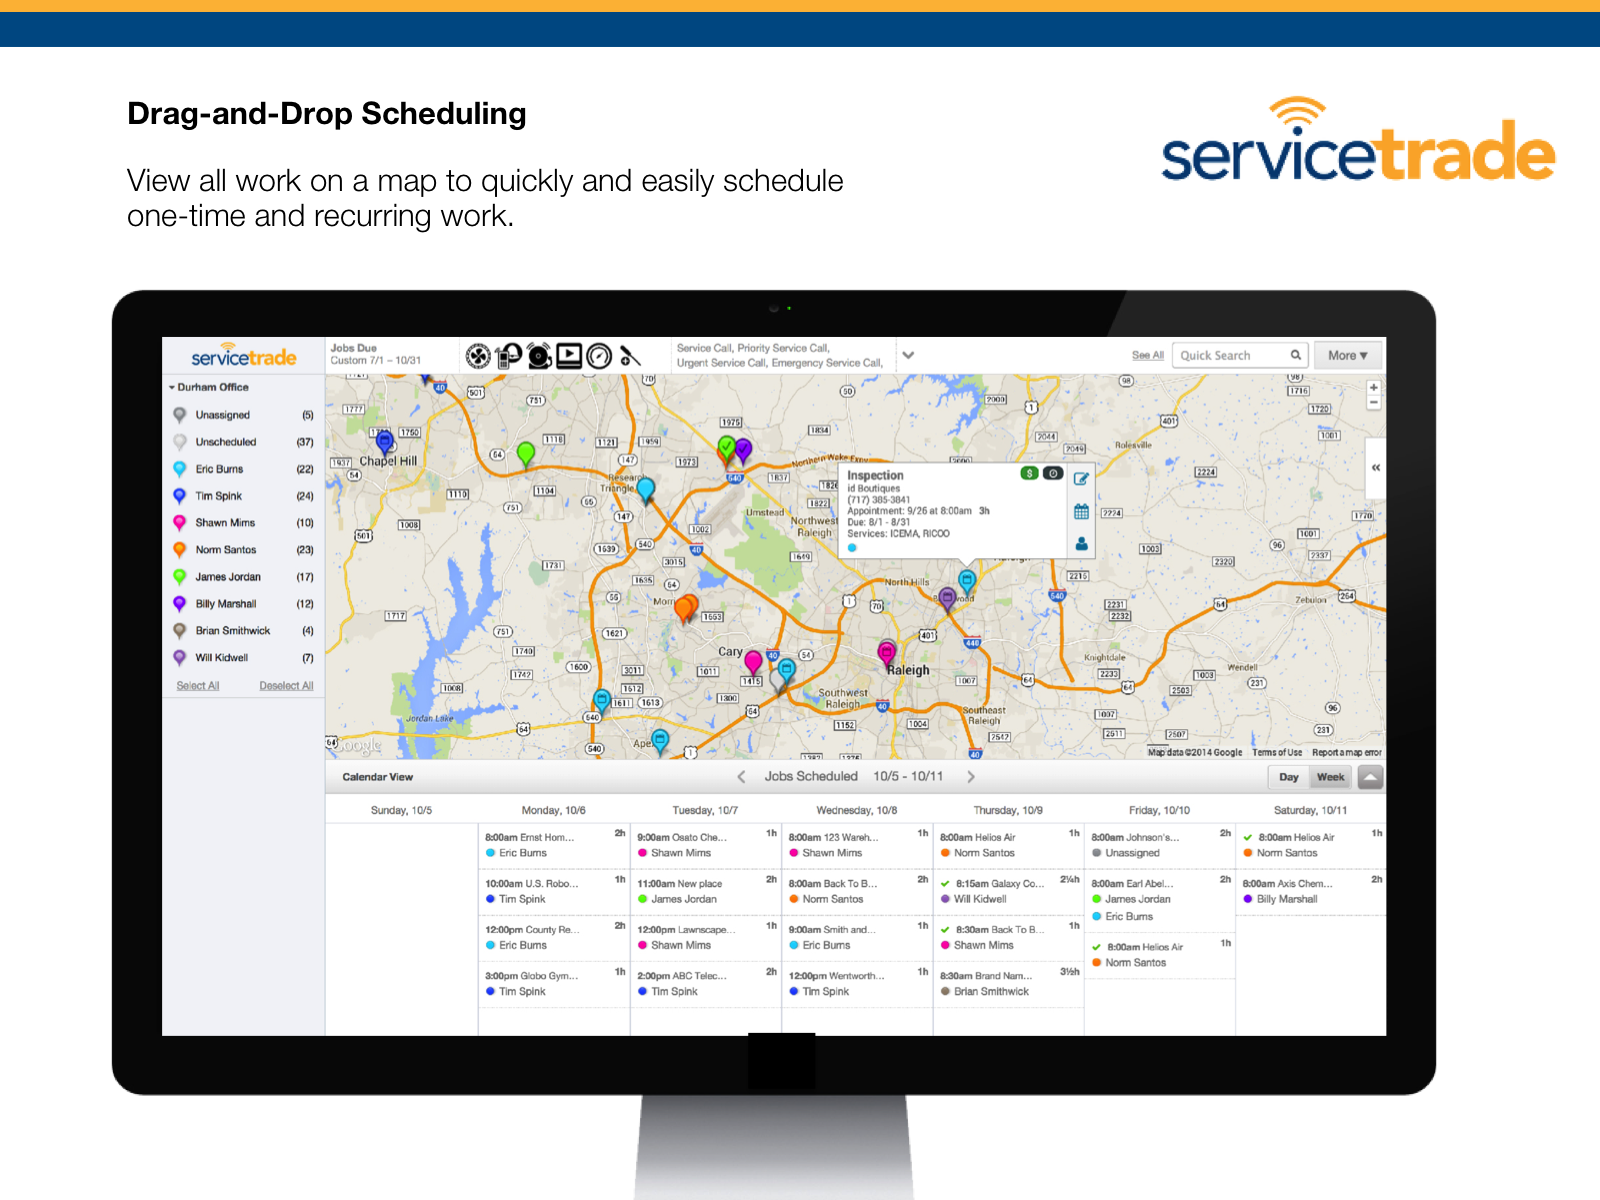 ServiceTrade Demo - Drag-and-drop Scheduling